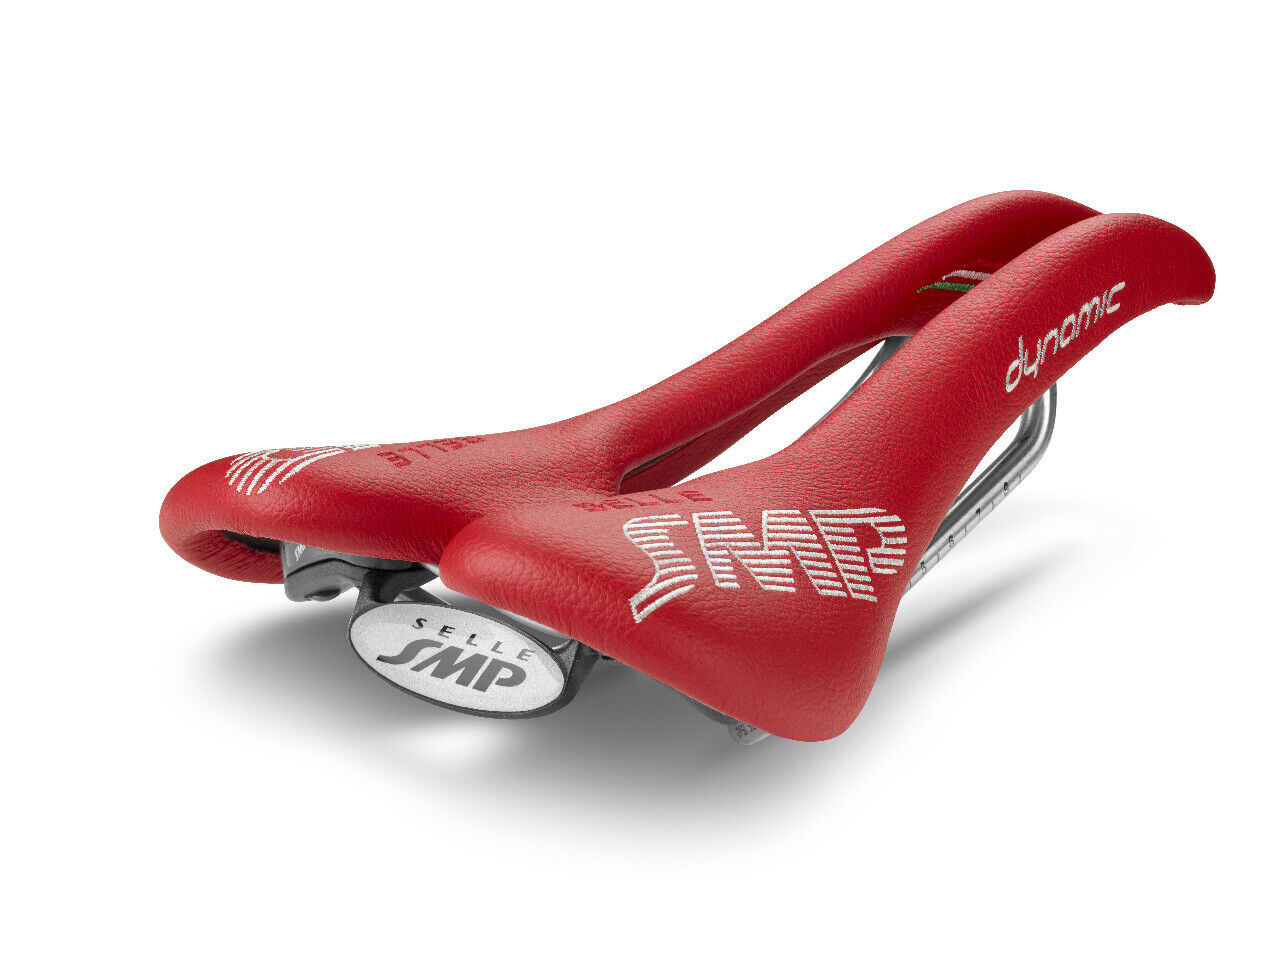 Selle SMP  Dynamic Bicycle Saddle Seat  rosso.  .  .  Made in